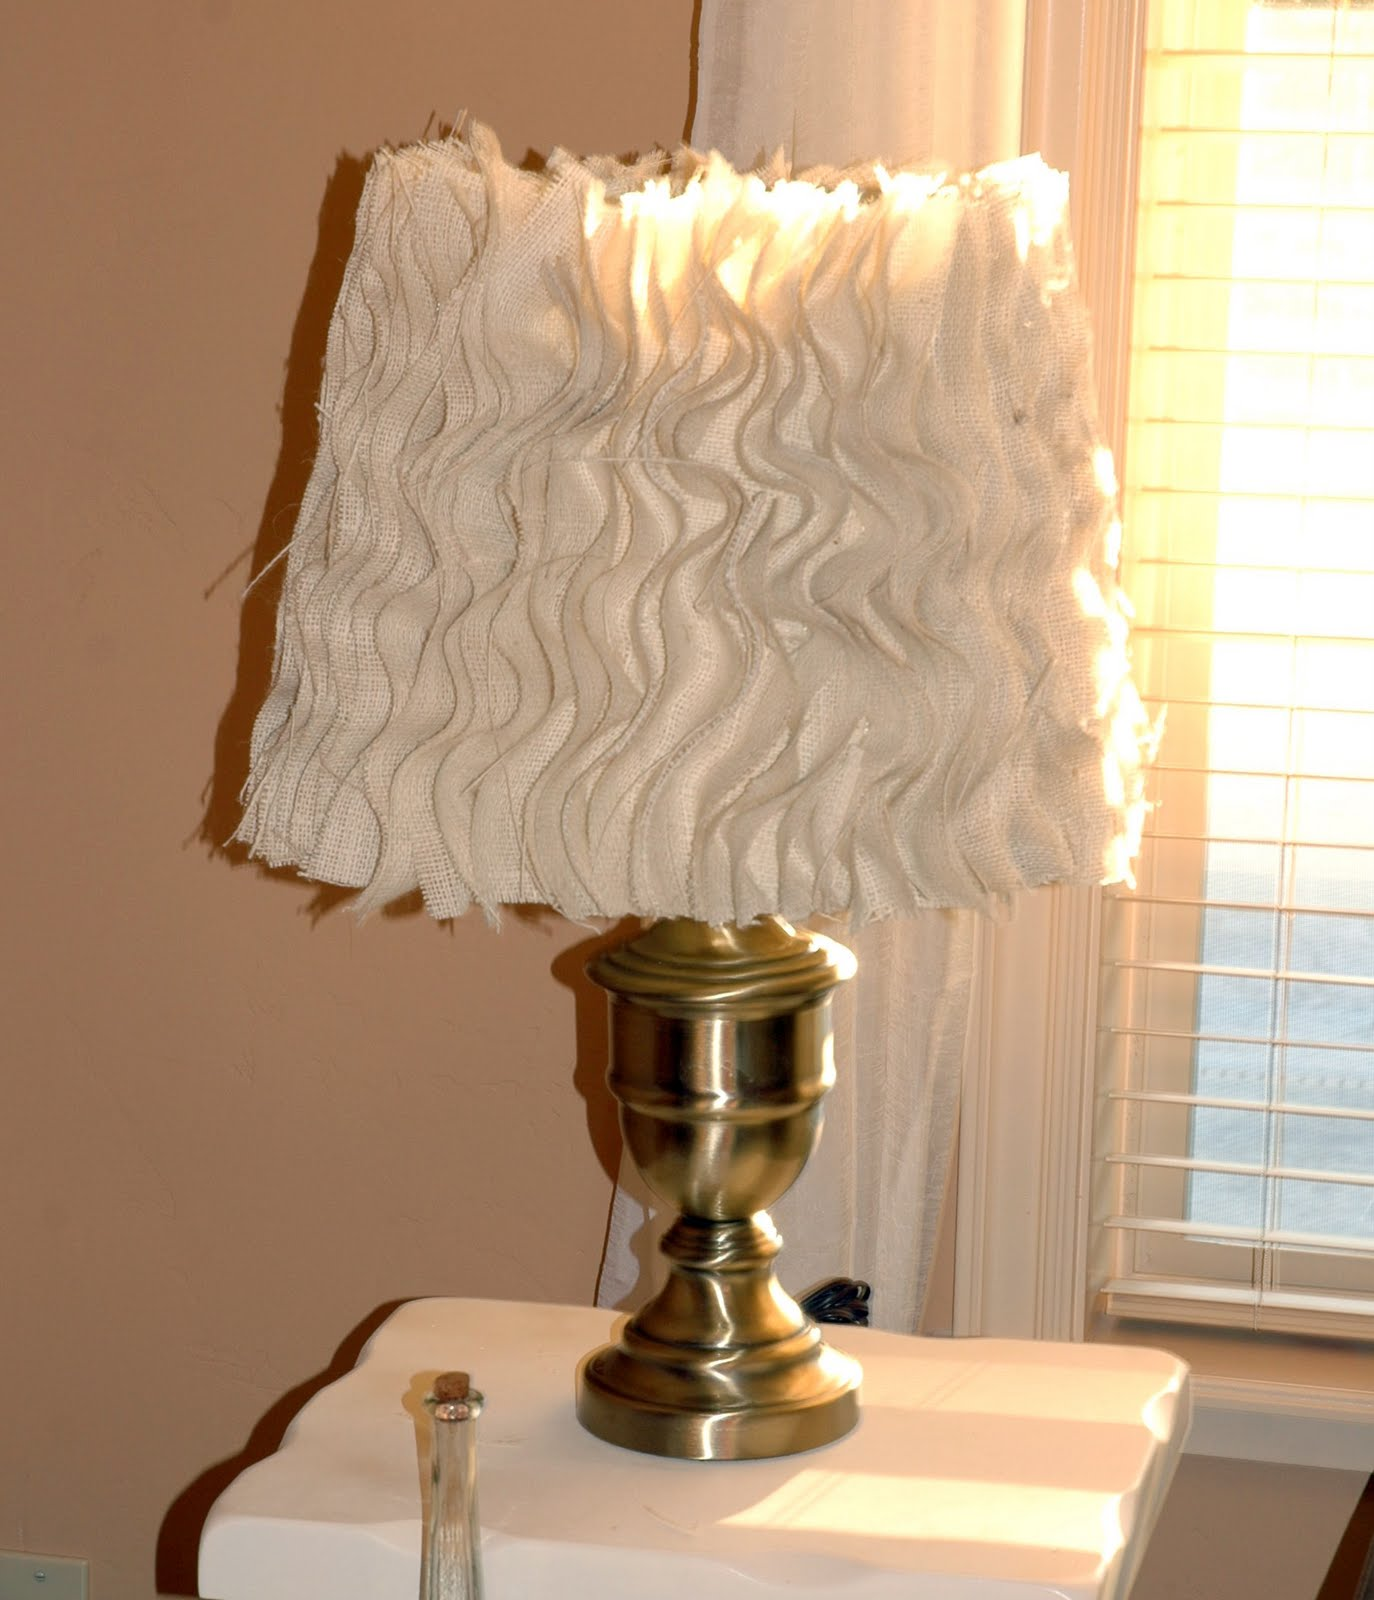 Anthropologie Lamps: The Turquoise Piano: Anthropologie Inspired Lamp Tutorial